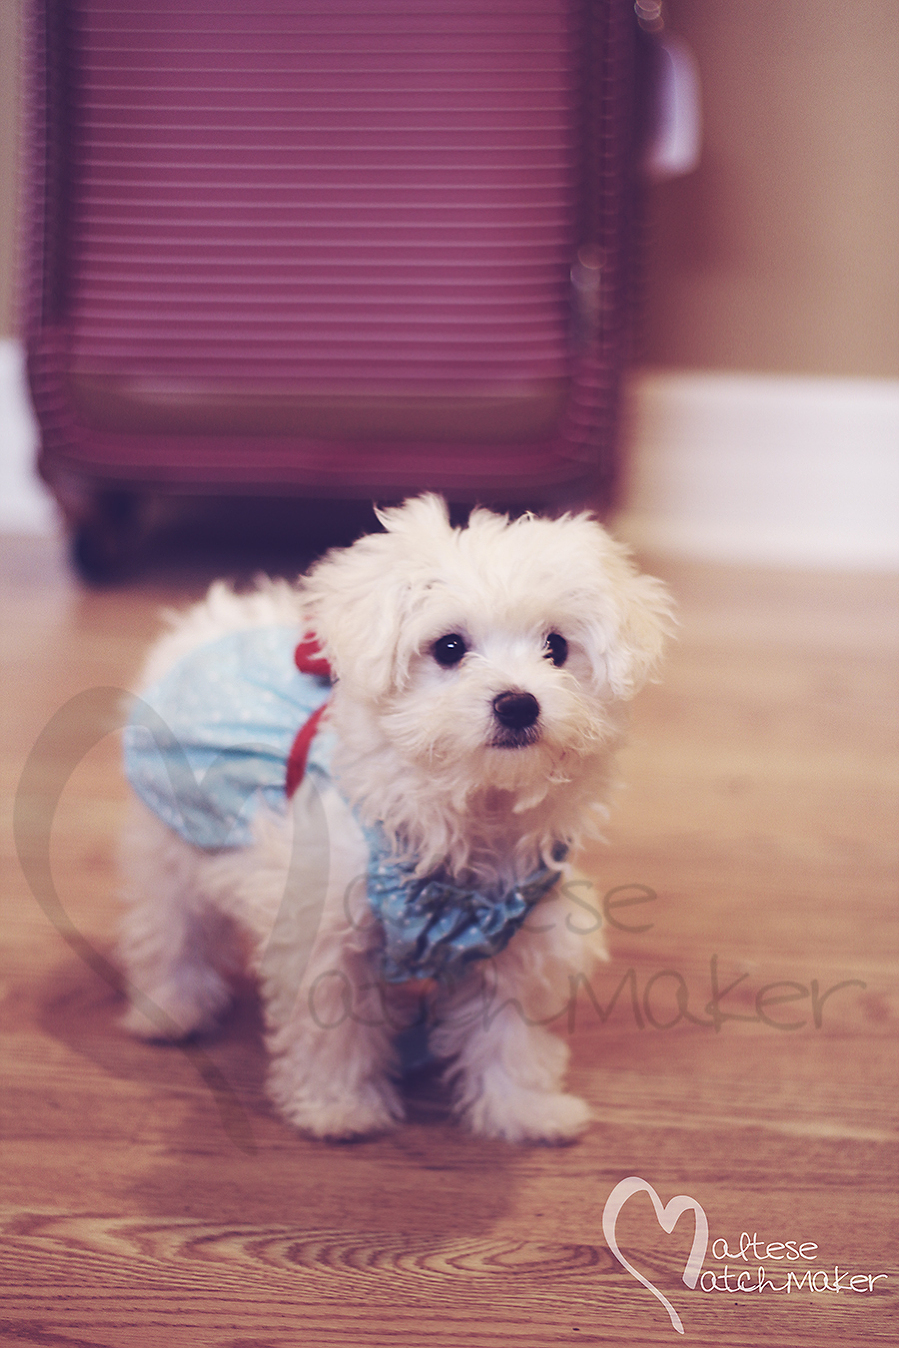 maltese puppy in dress on wood floor vertical